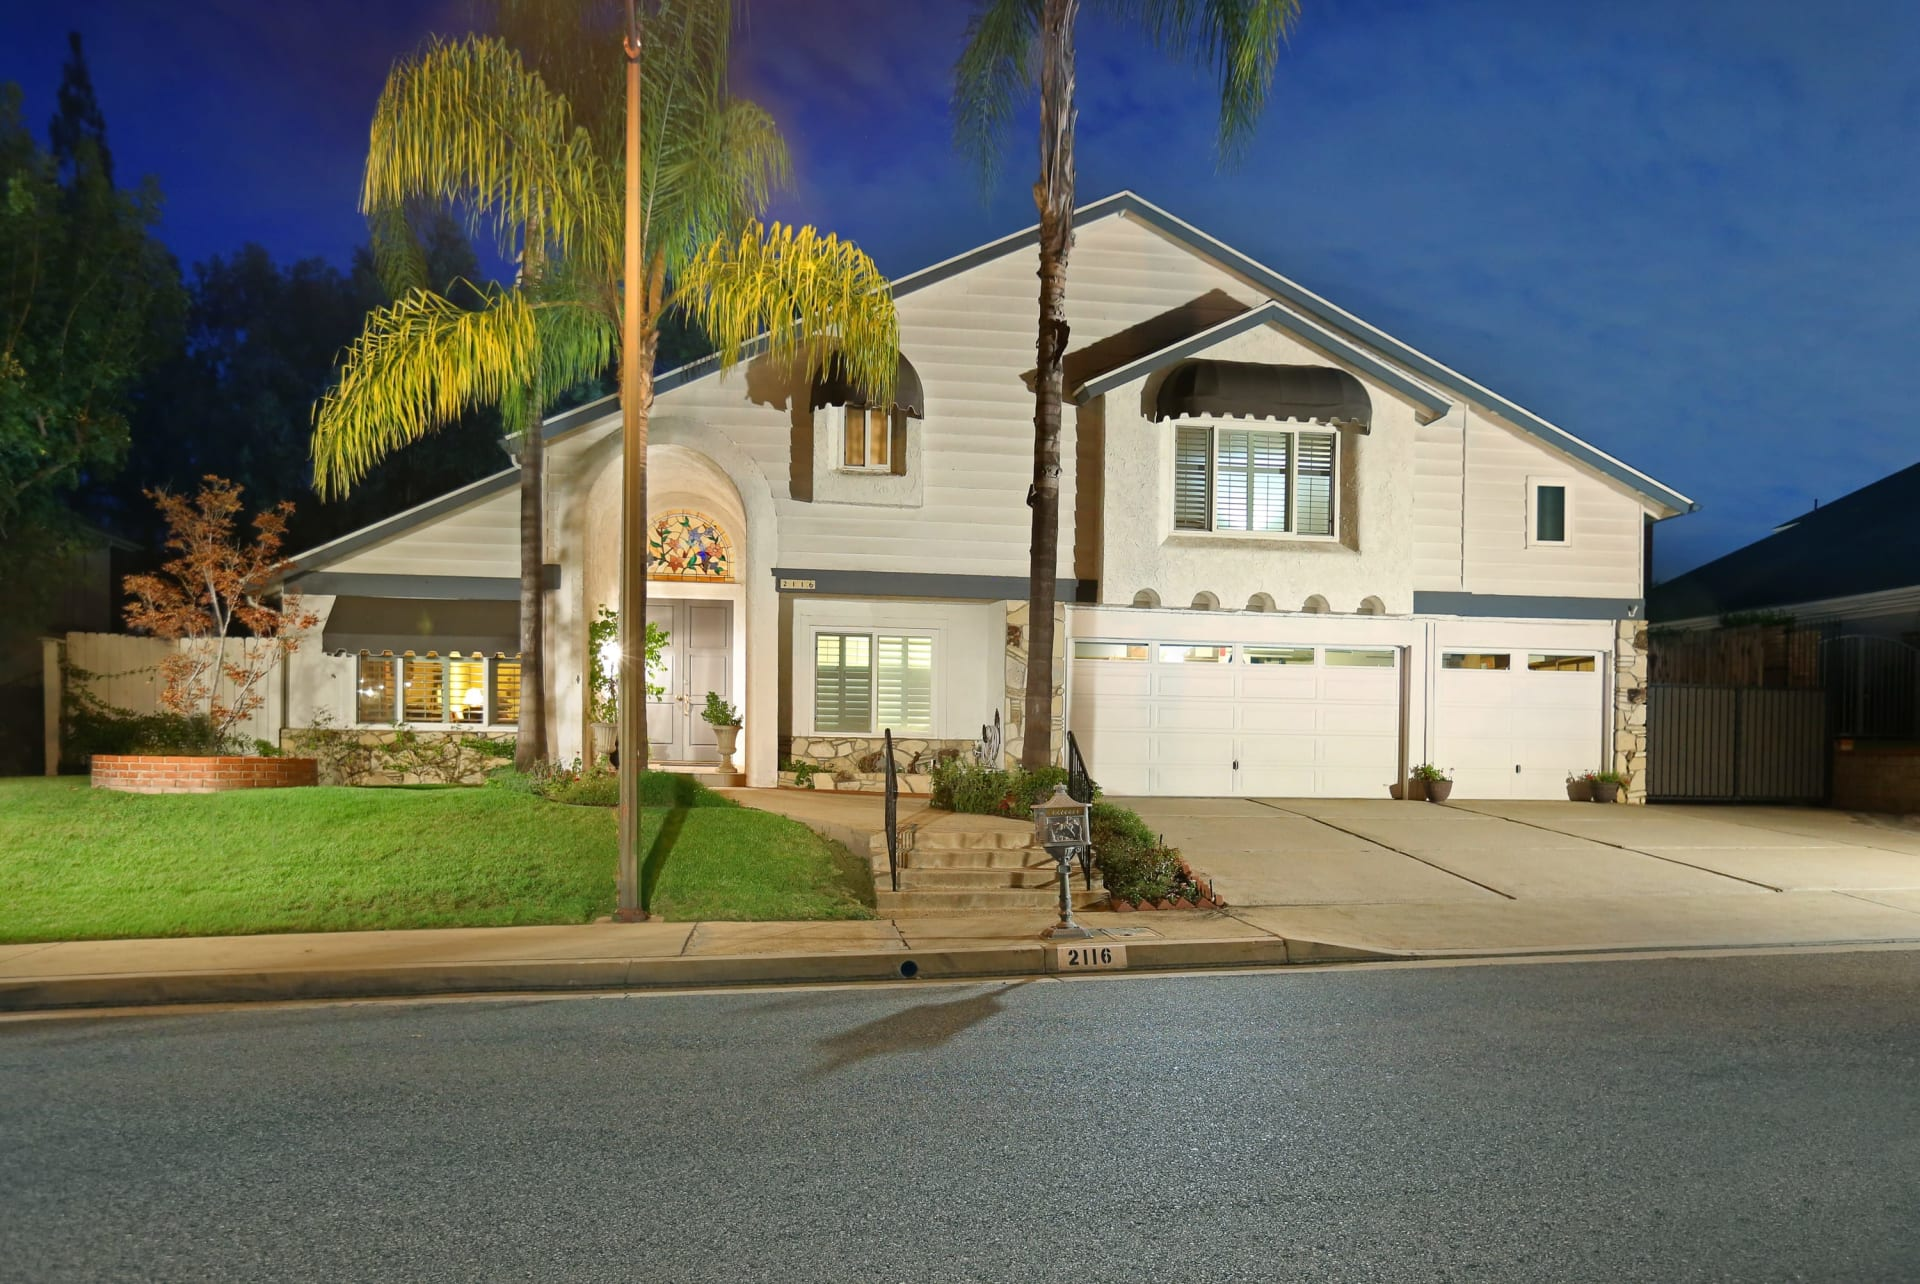 SOLD by Edwin Ordubegian | 2116 Erin Way Glendale | The Home that you fall in love video preview